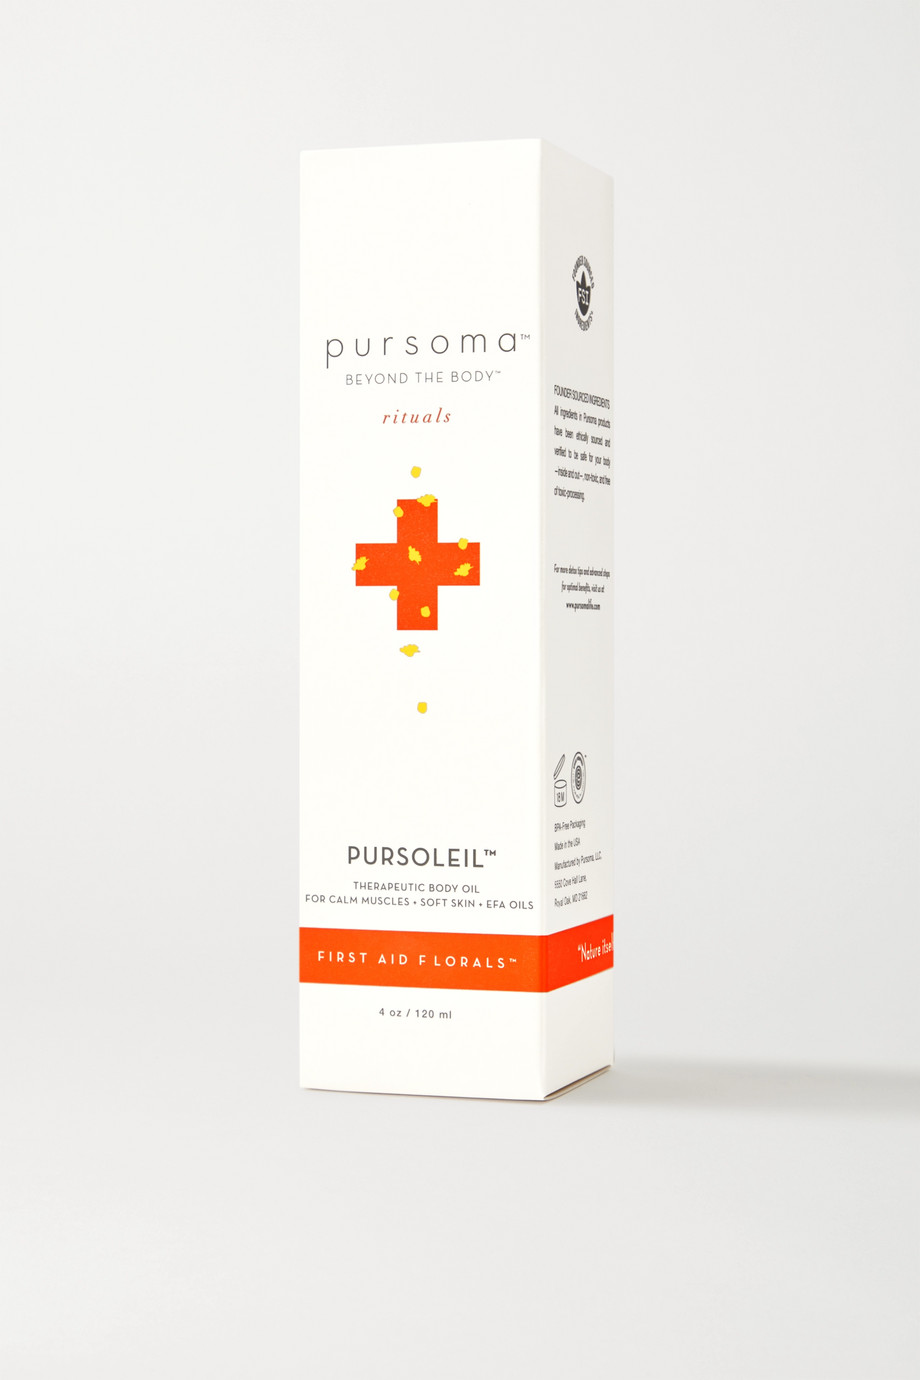 PURSOMA Pursoleil Therapeutic Body Oil, 120ml